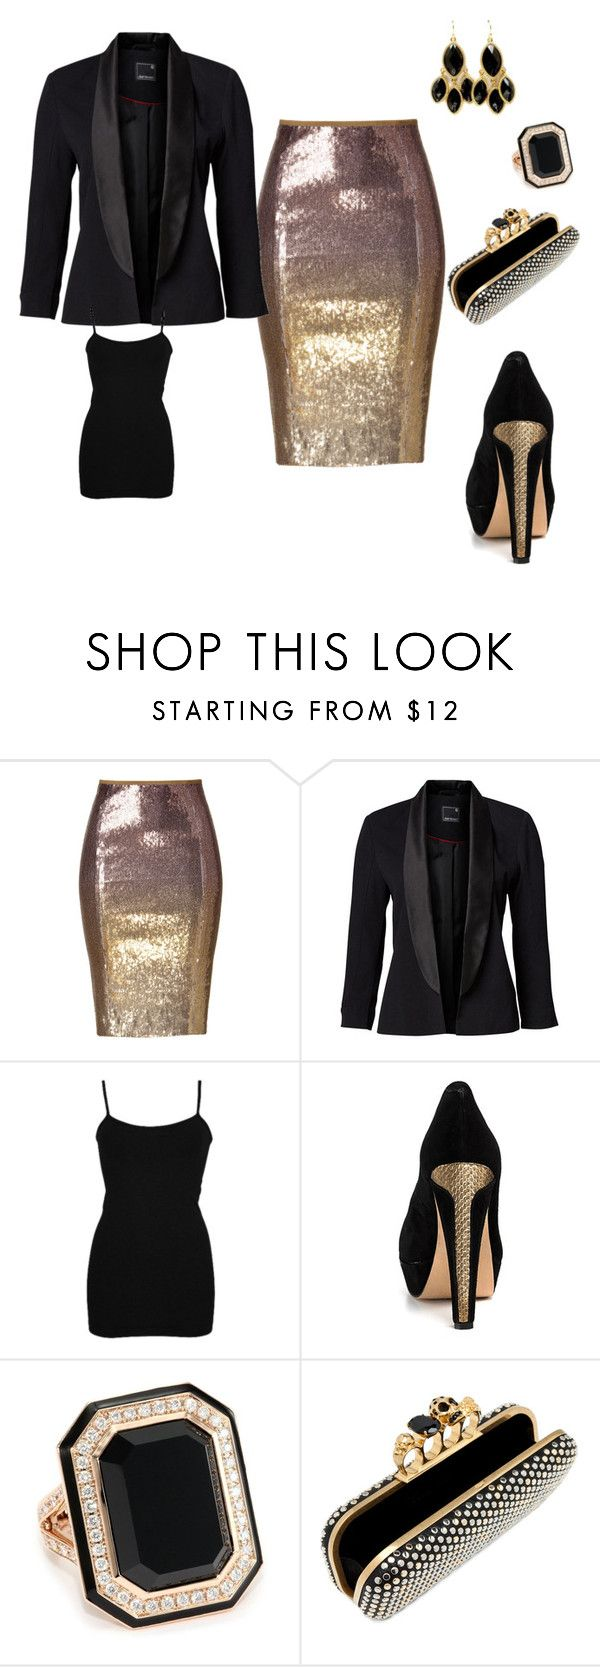 """""""Style 8"""" by shannon-legrand ❤ liked on Polyvore featuring Donna Karan, BKE core, House of Harlow 1960, Ivanka Trump, Alexander McQueen and Fantasy Jewelry Box"""